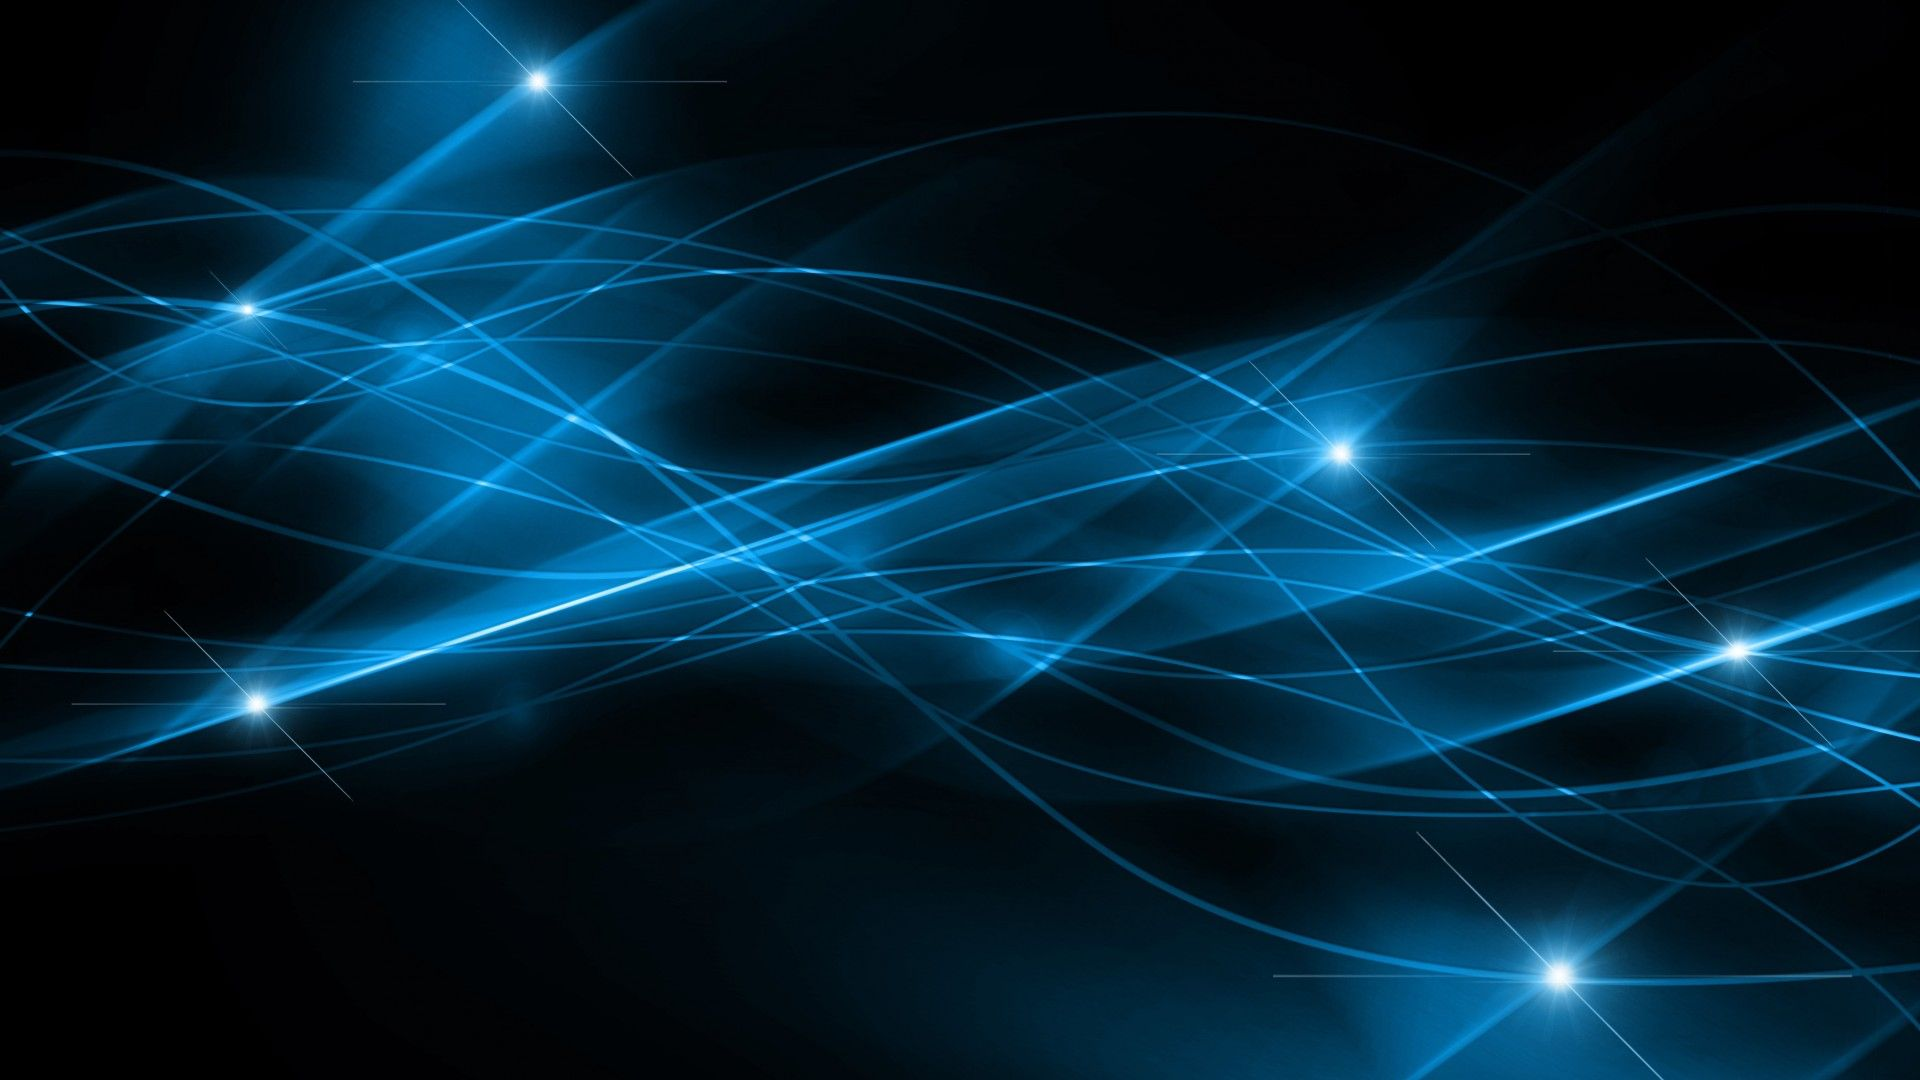 Download Black And Blue Abstract Backgrounds Background 1 HD 1920x1080